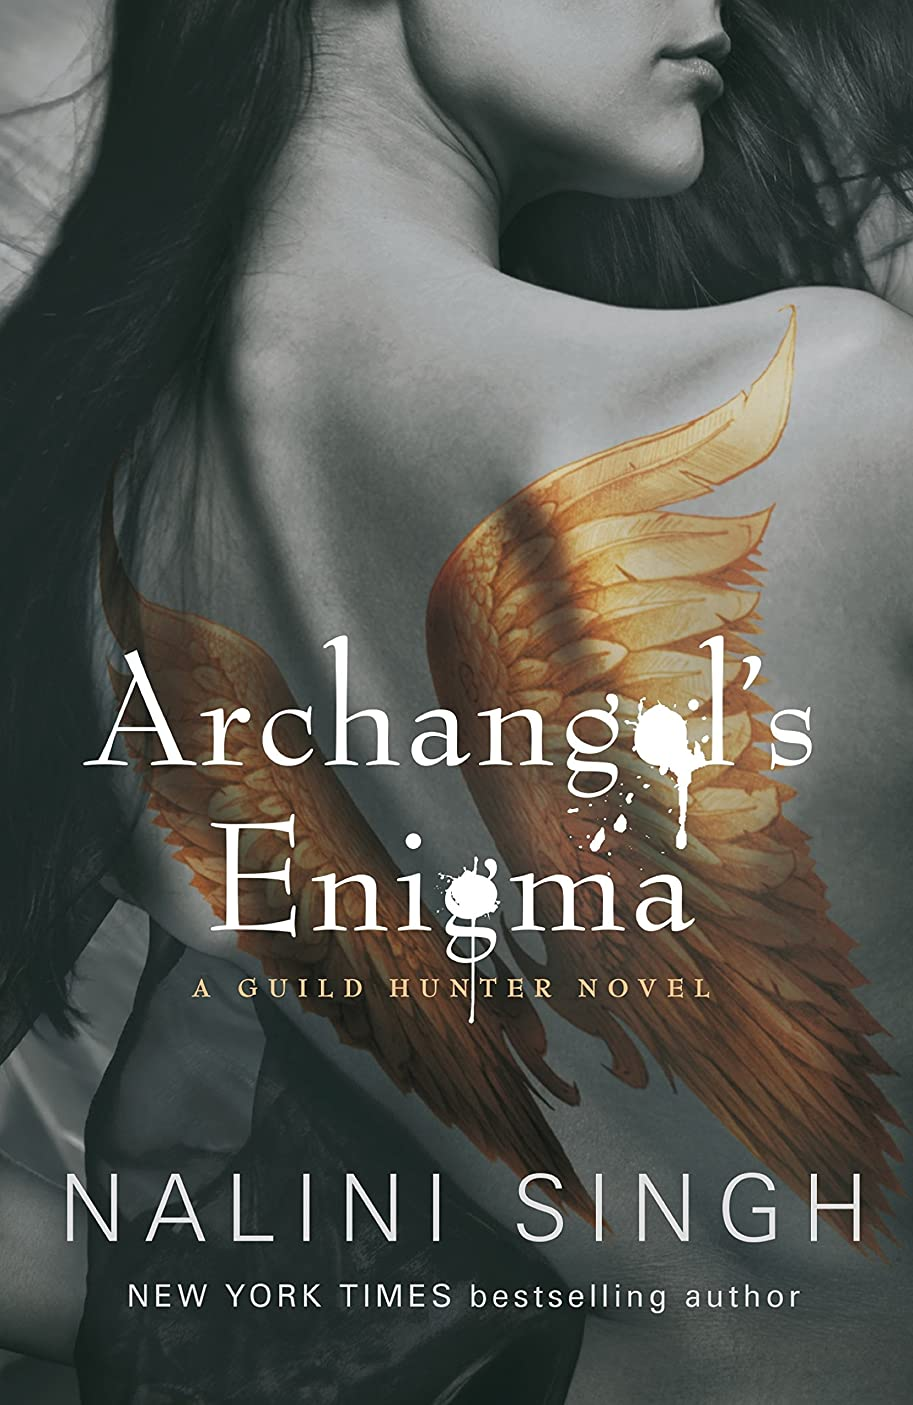 思い出す宗教的な報いるArchangel's Enigma: Book 8 (Guild Hunter Series) (English Edition)